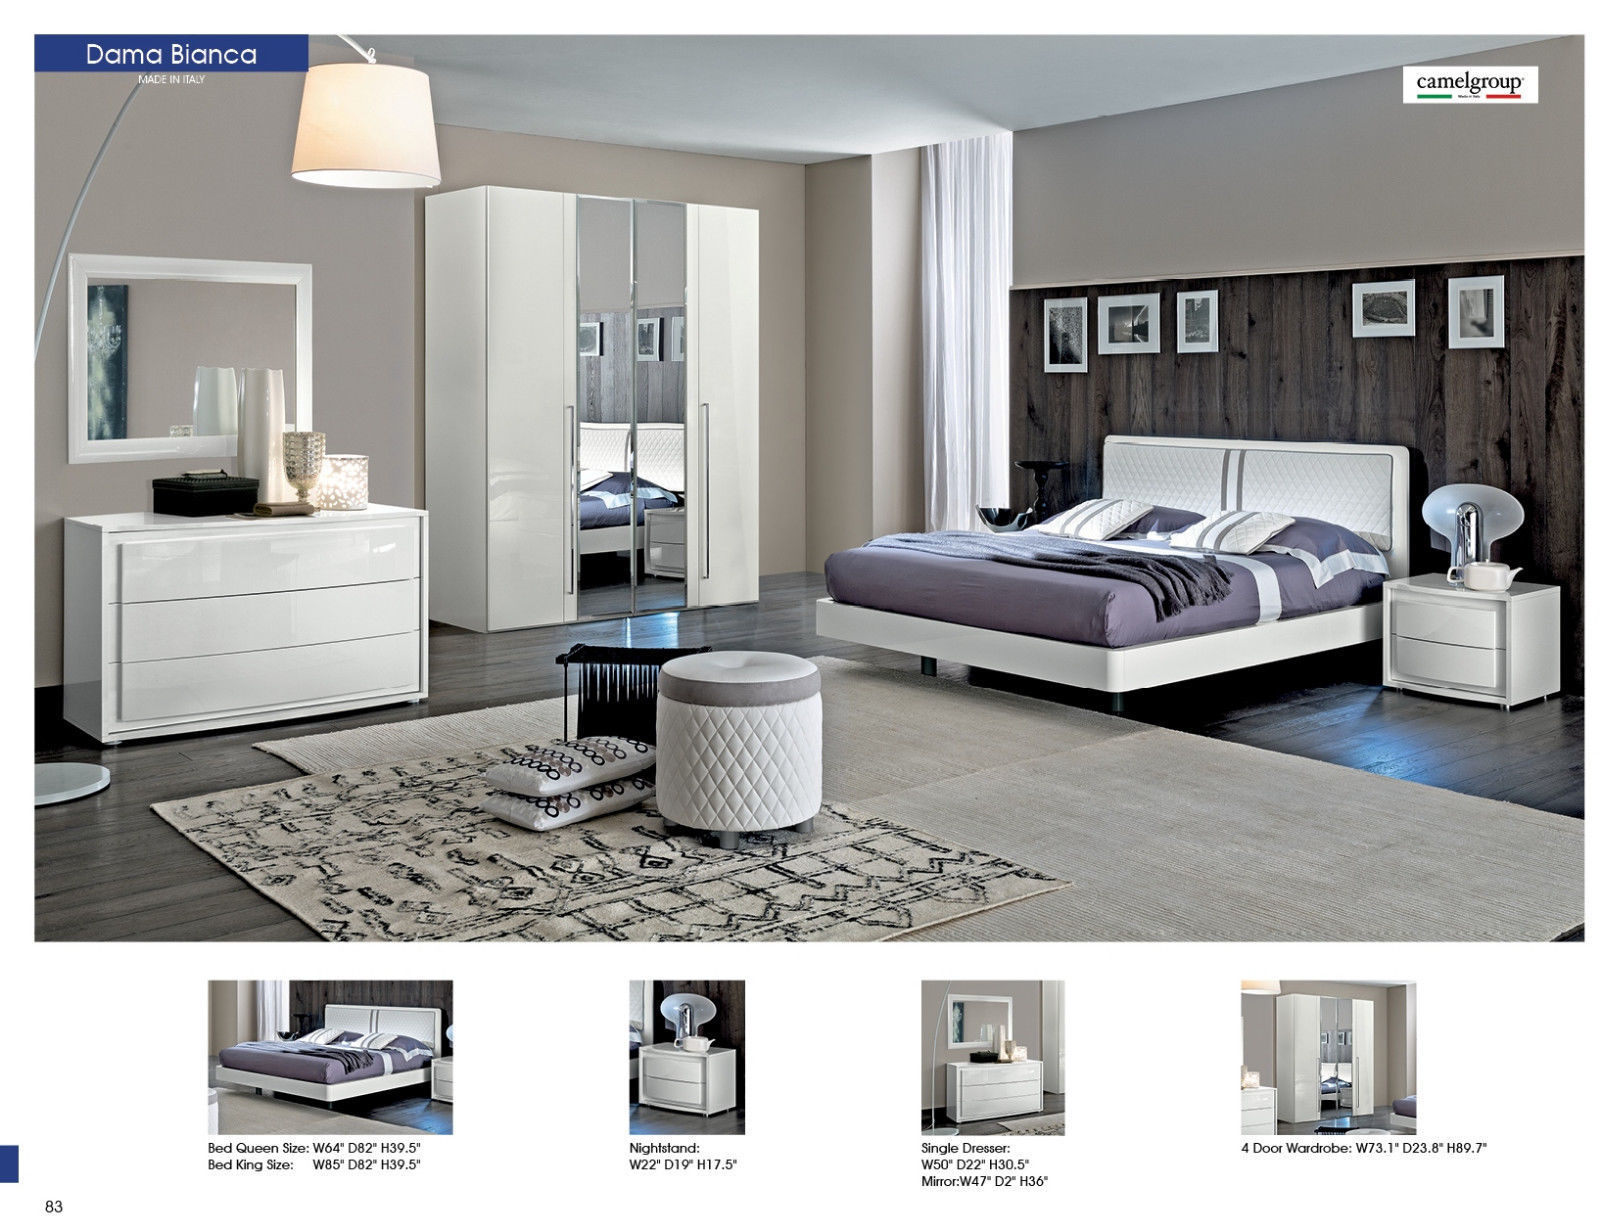 ESF Dama Bianca Queen Size Bedroom Set 5pc. Chic Contemporary Modern Style